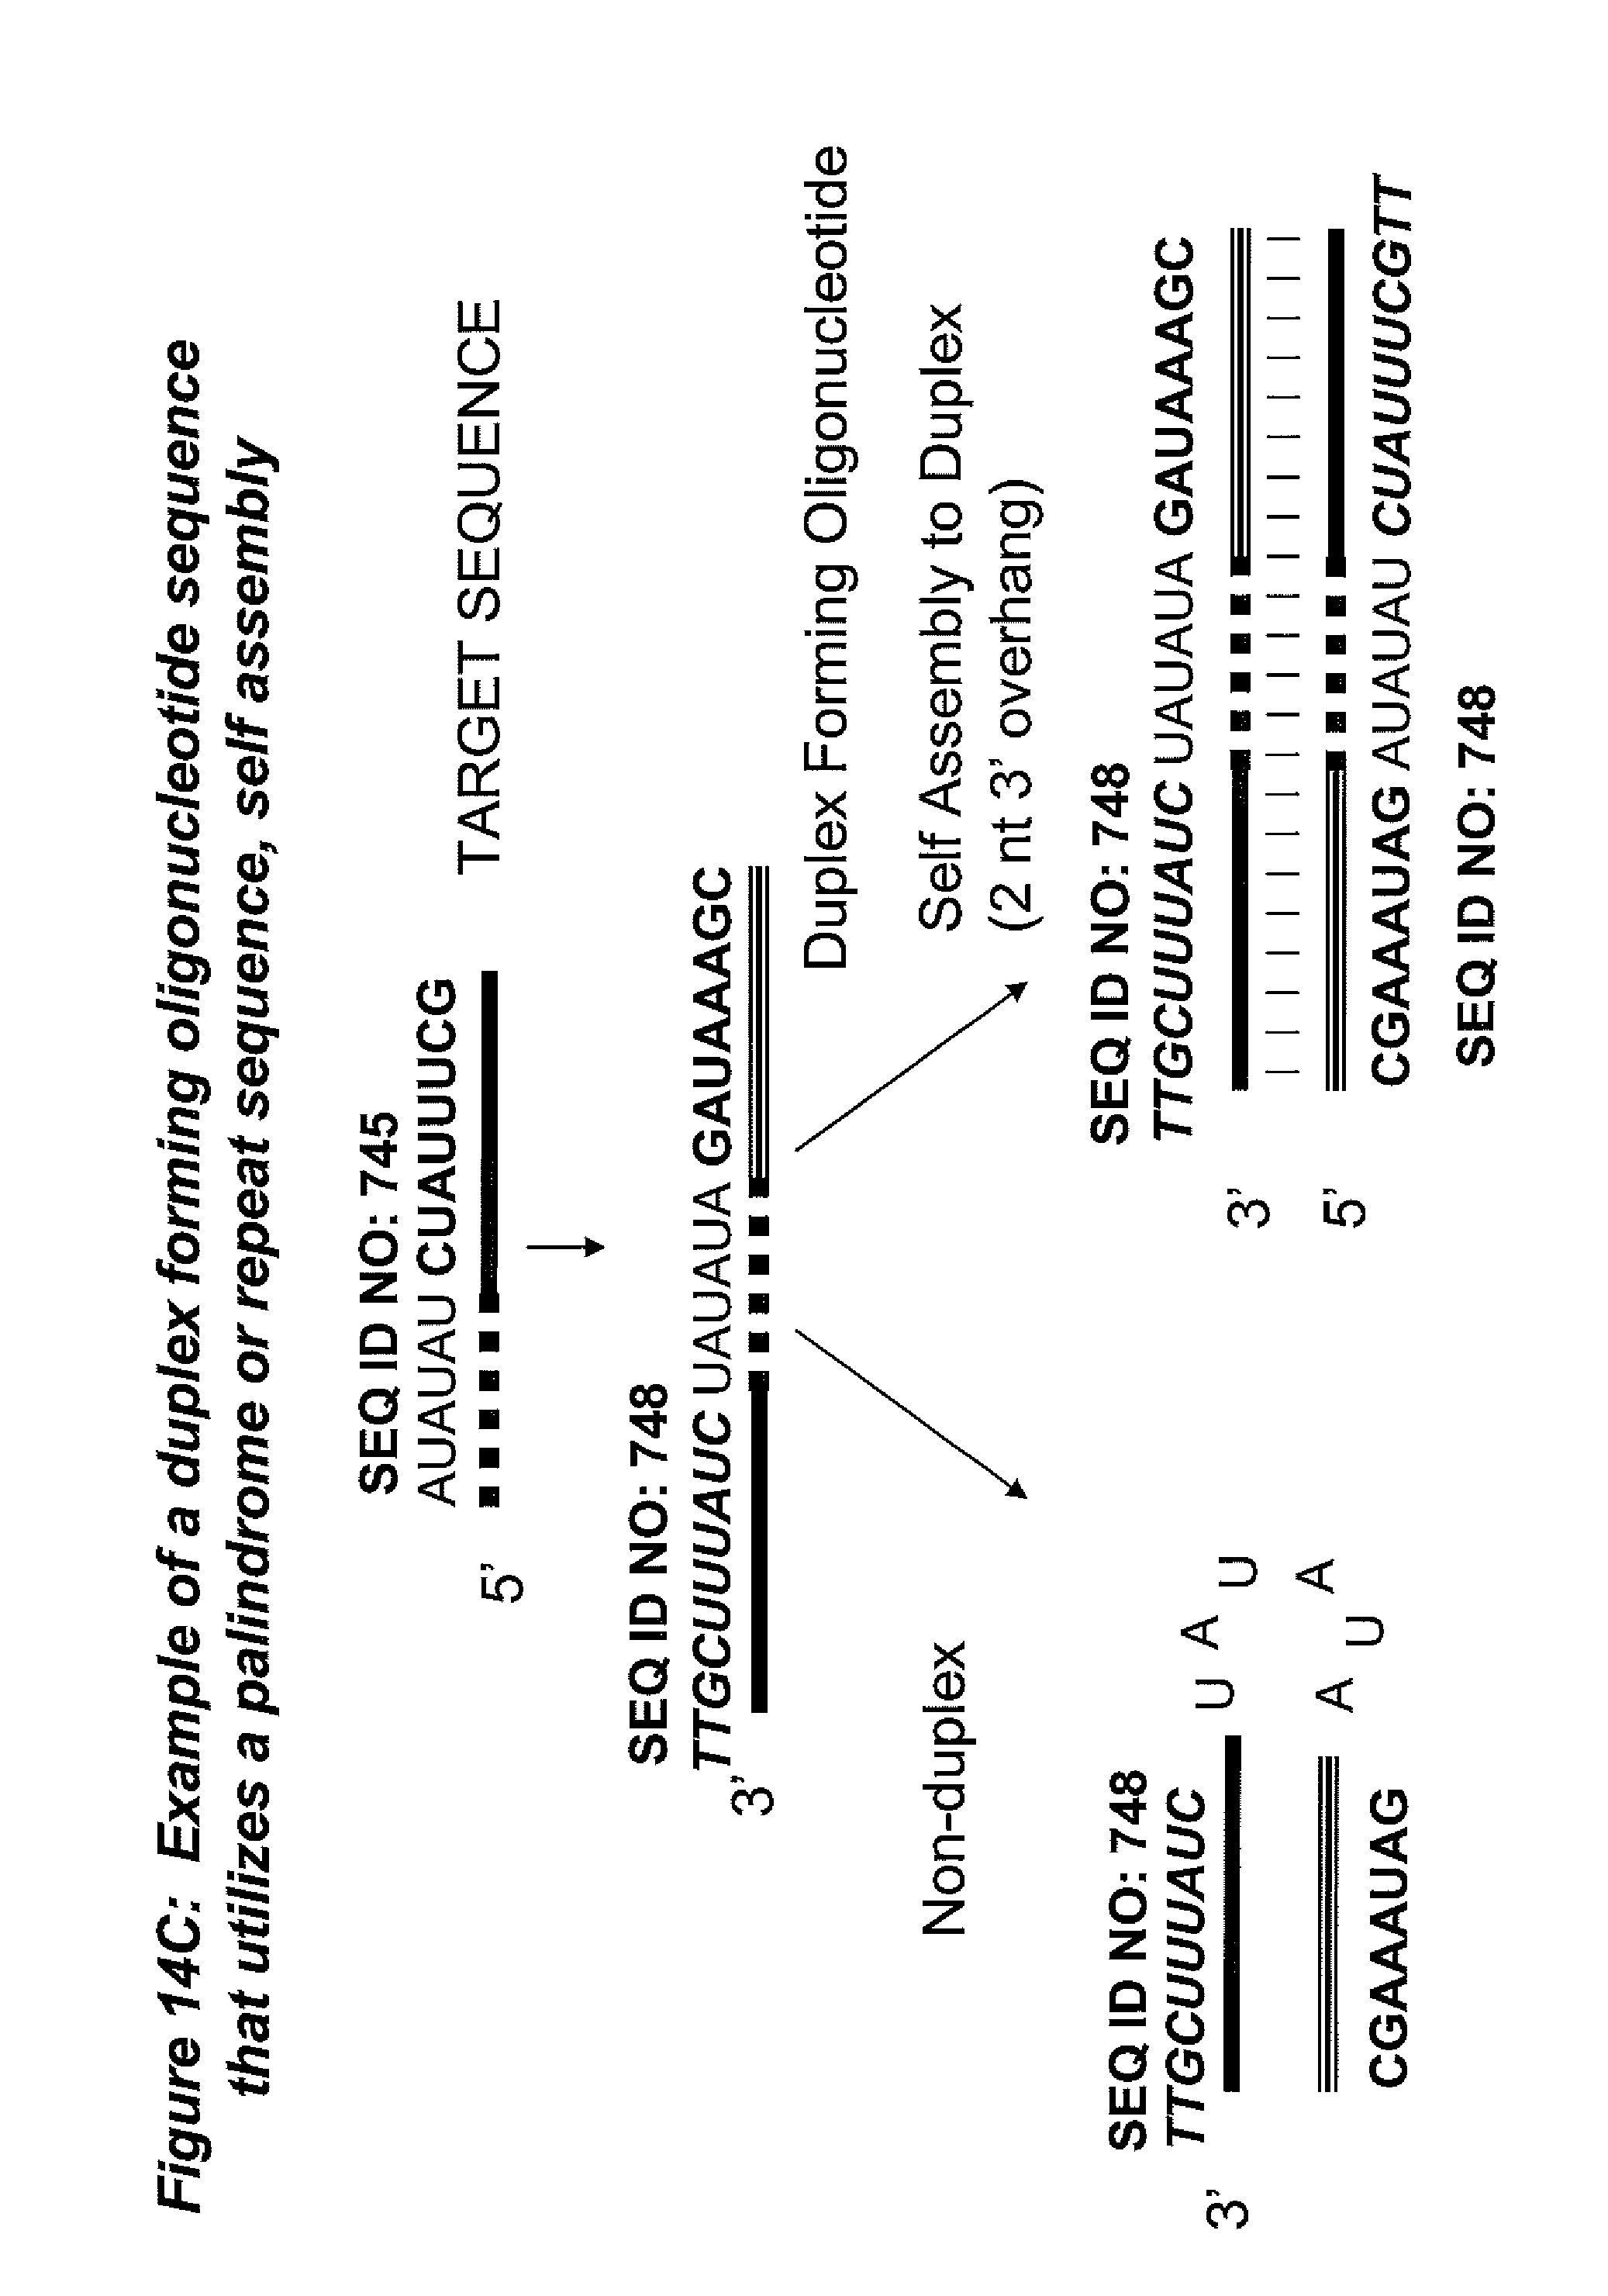 expression and purification of human platelet derived The platelet-derived growth factor (pdgf) family consists of subunits a and b and receptors α and β this paper evaluates the potential role of the homodimer pdgf-bb as a growth factor in meningiomas.